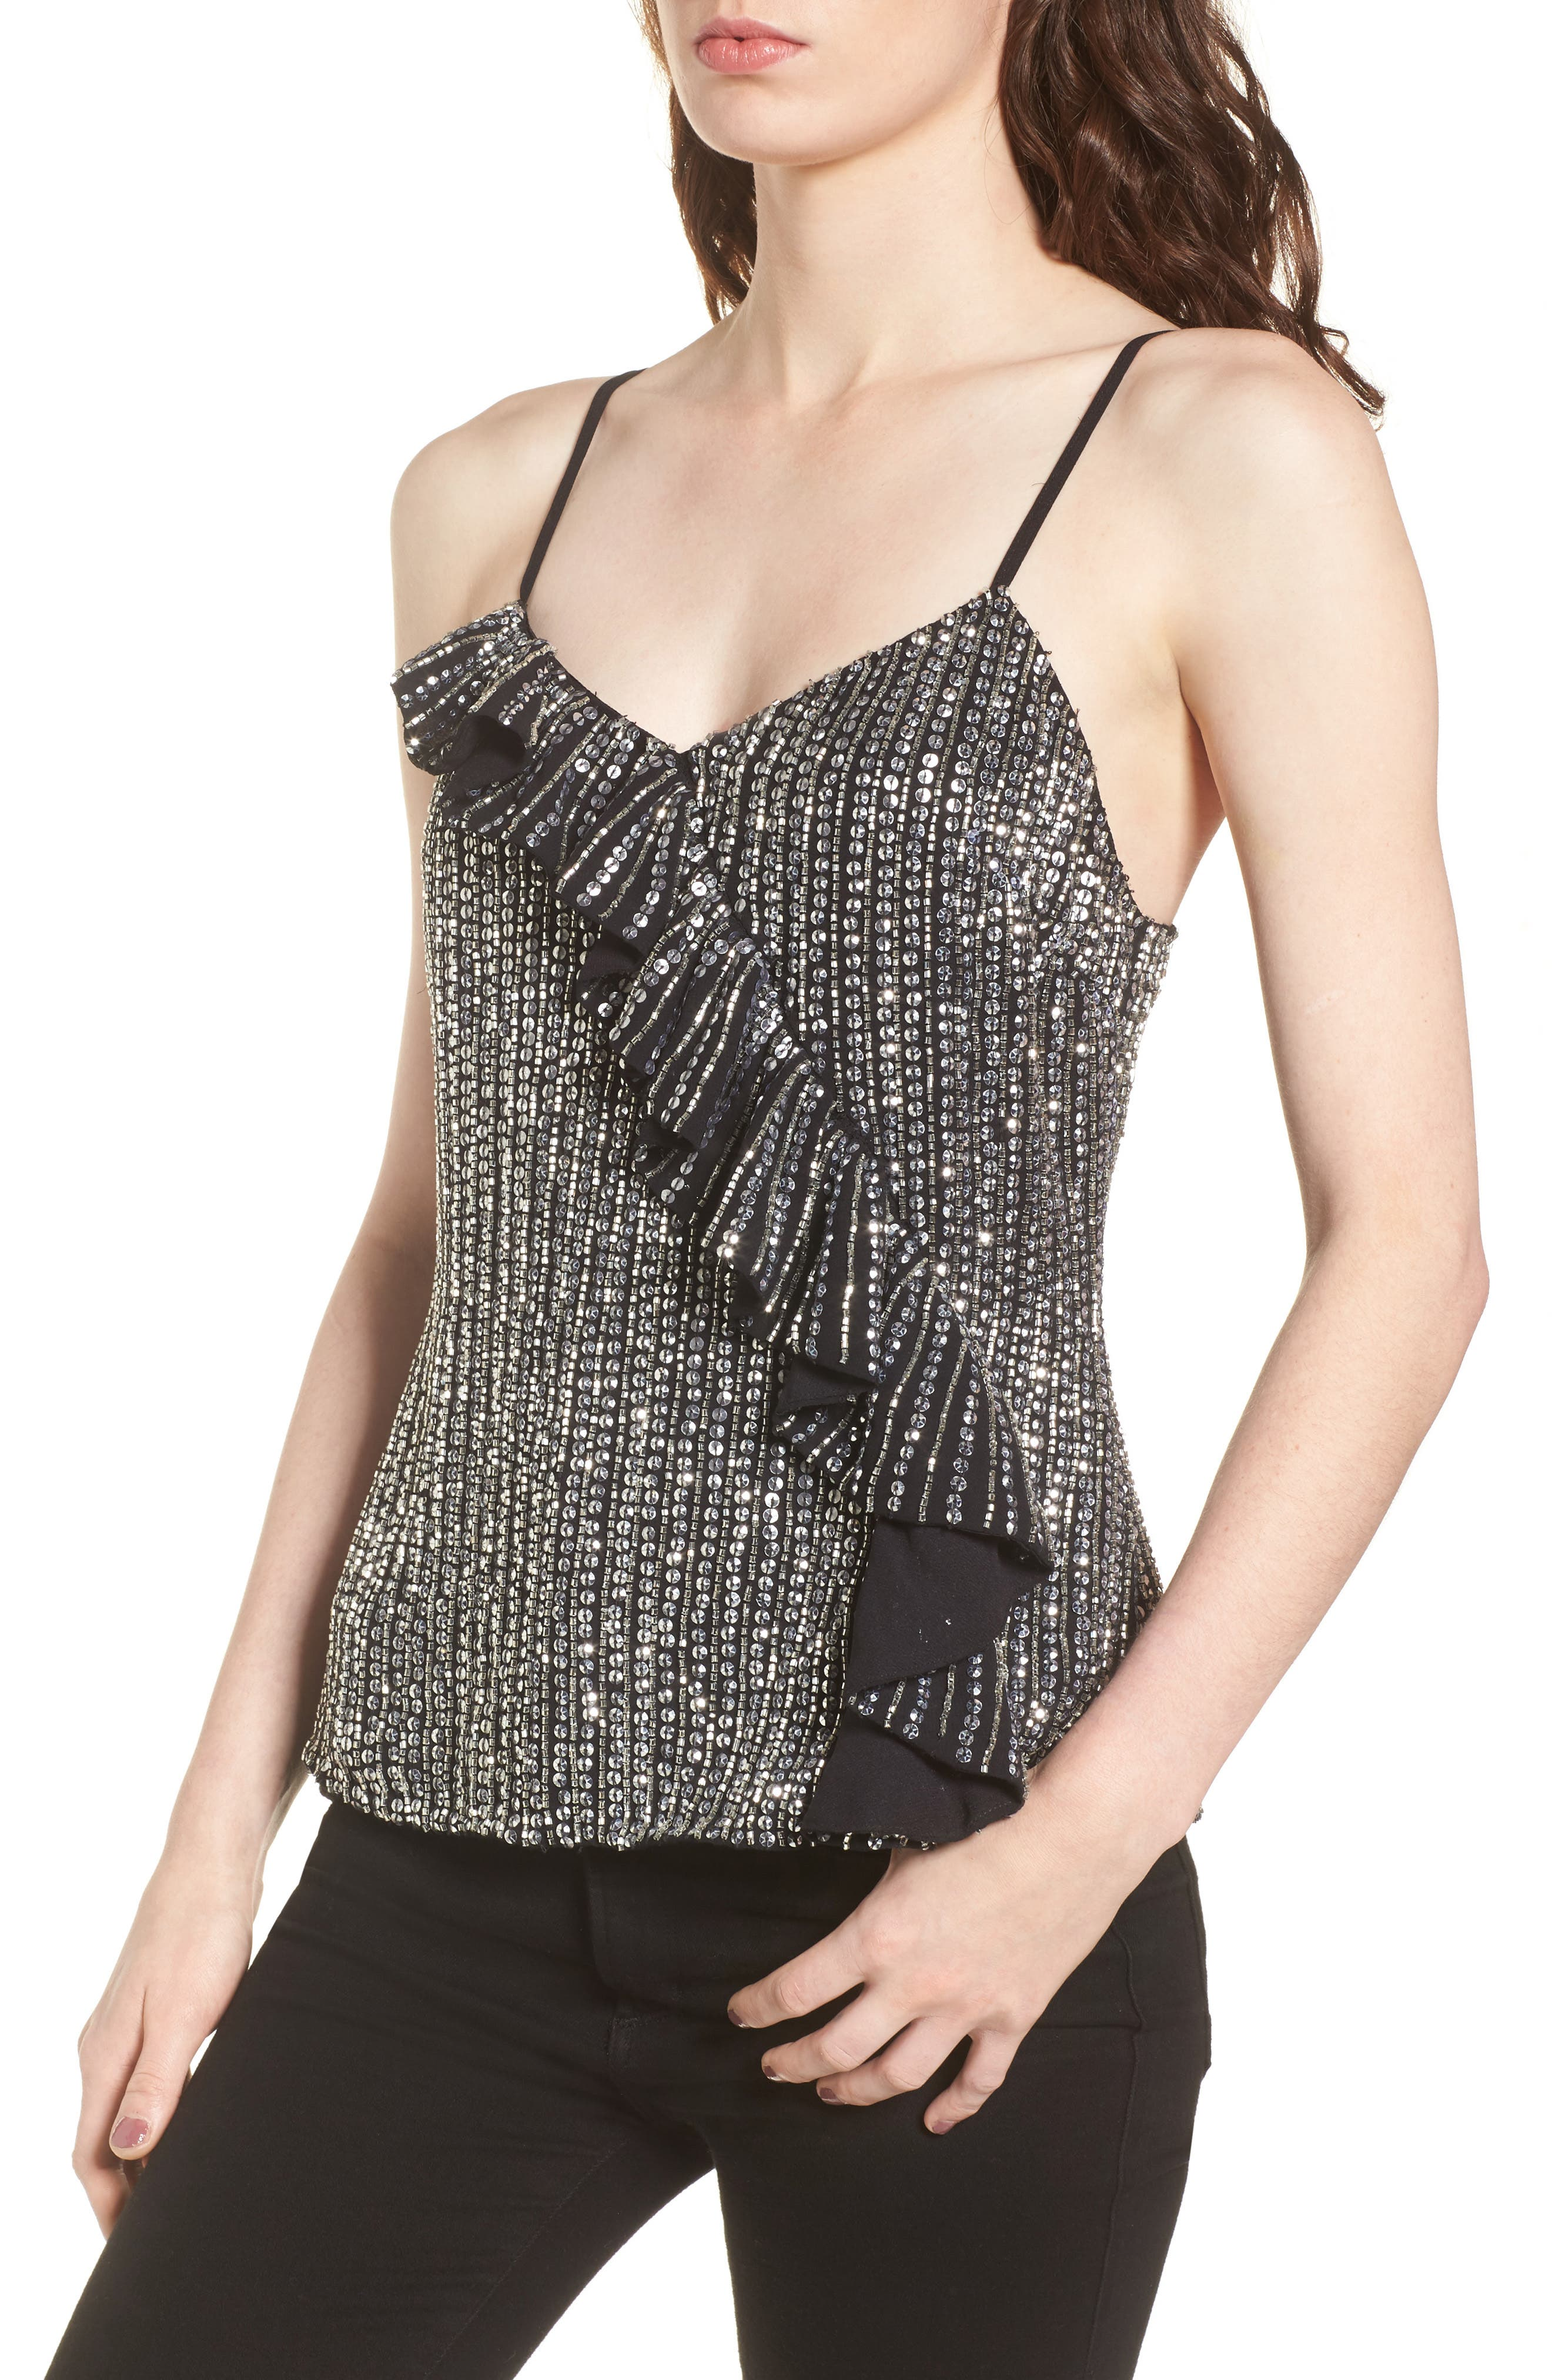 Main Image - Parker Justine Sequin Camisole